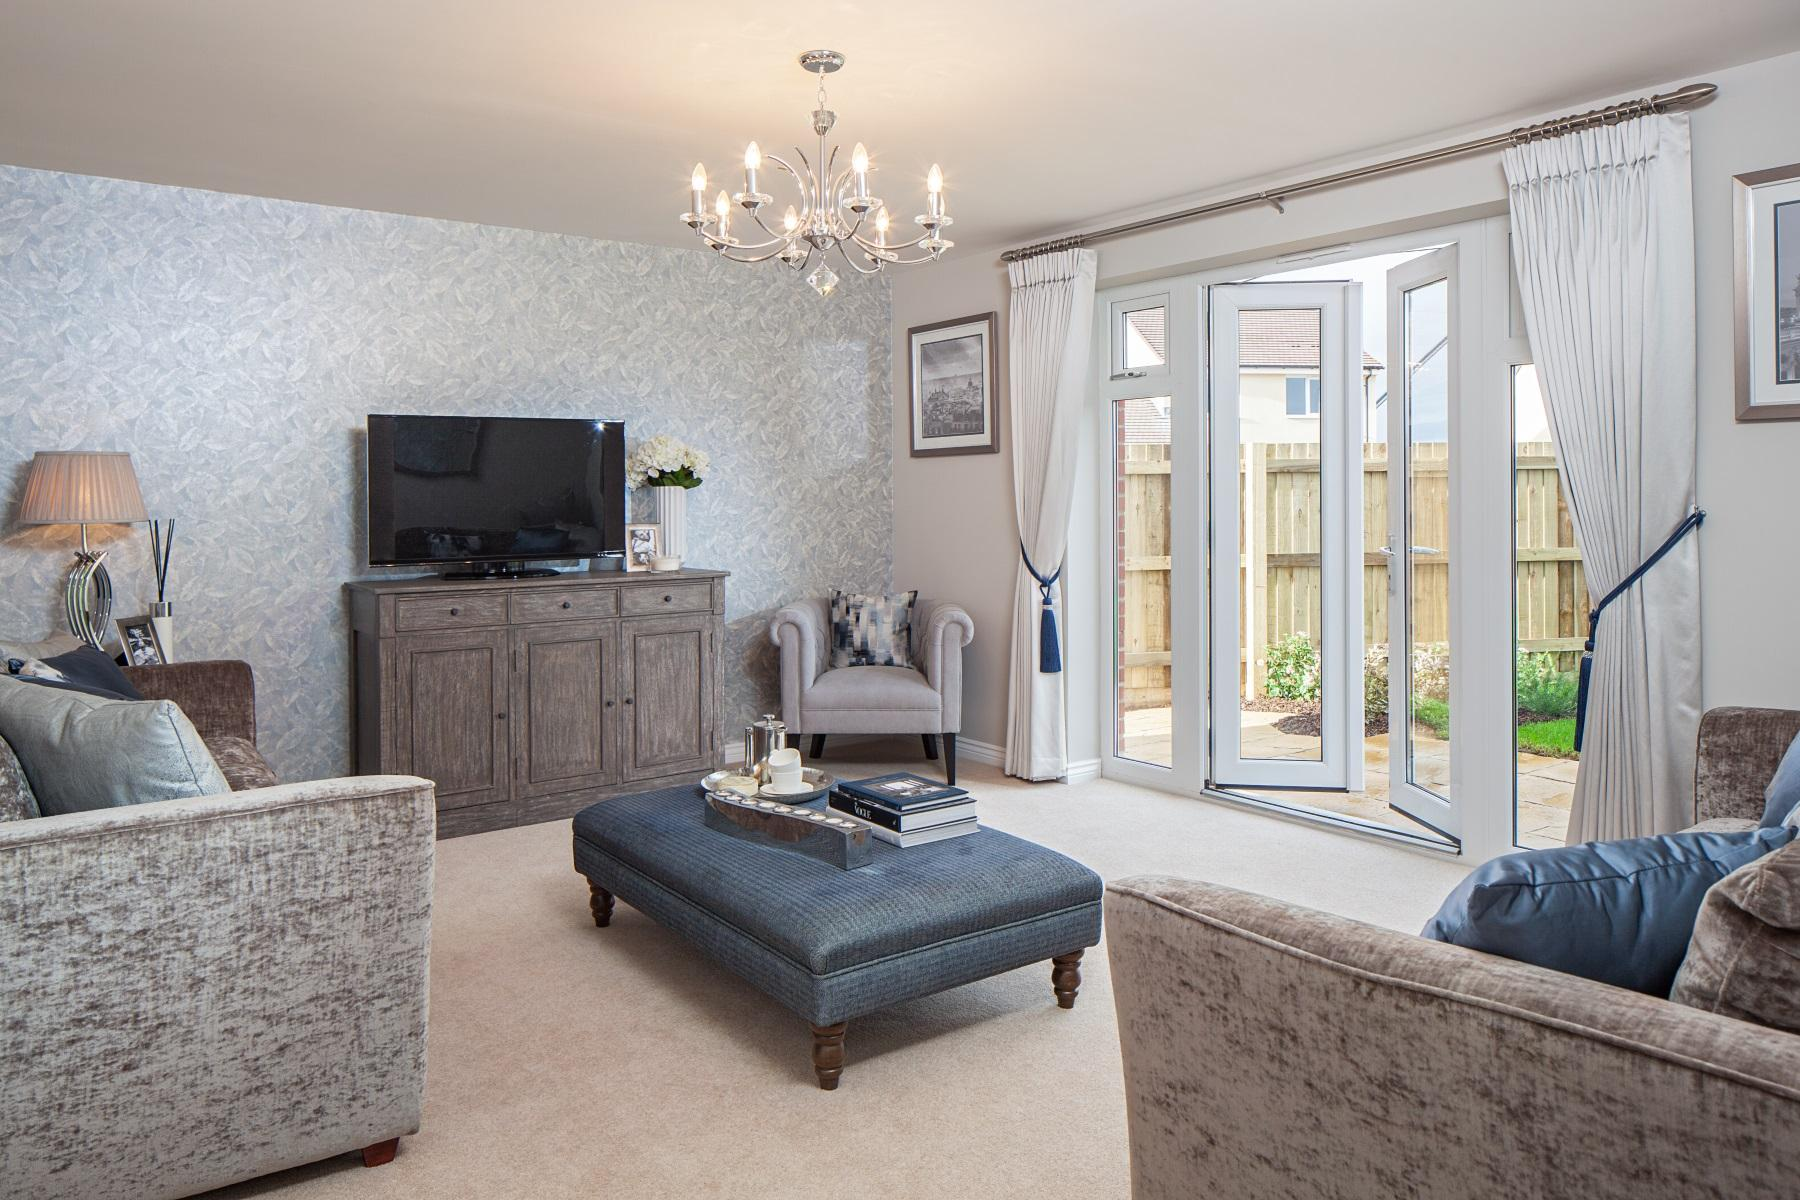 TW Exeter - Chy An Dowr - Thornford example living room